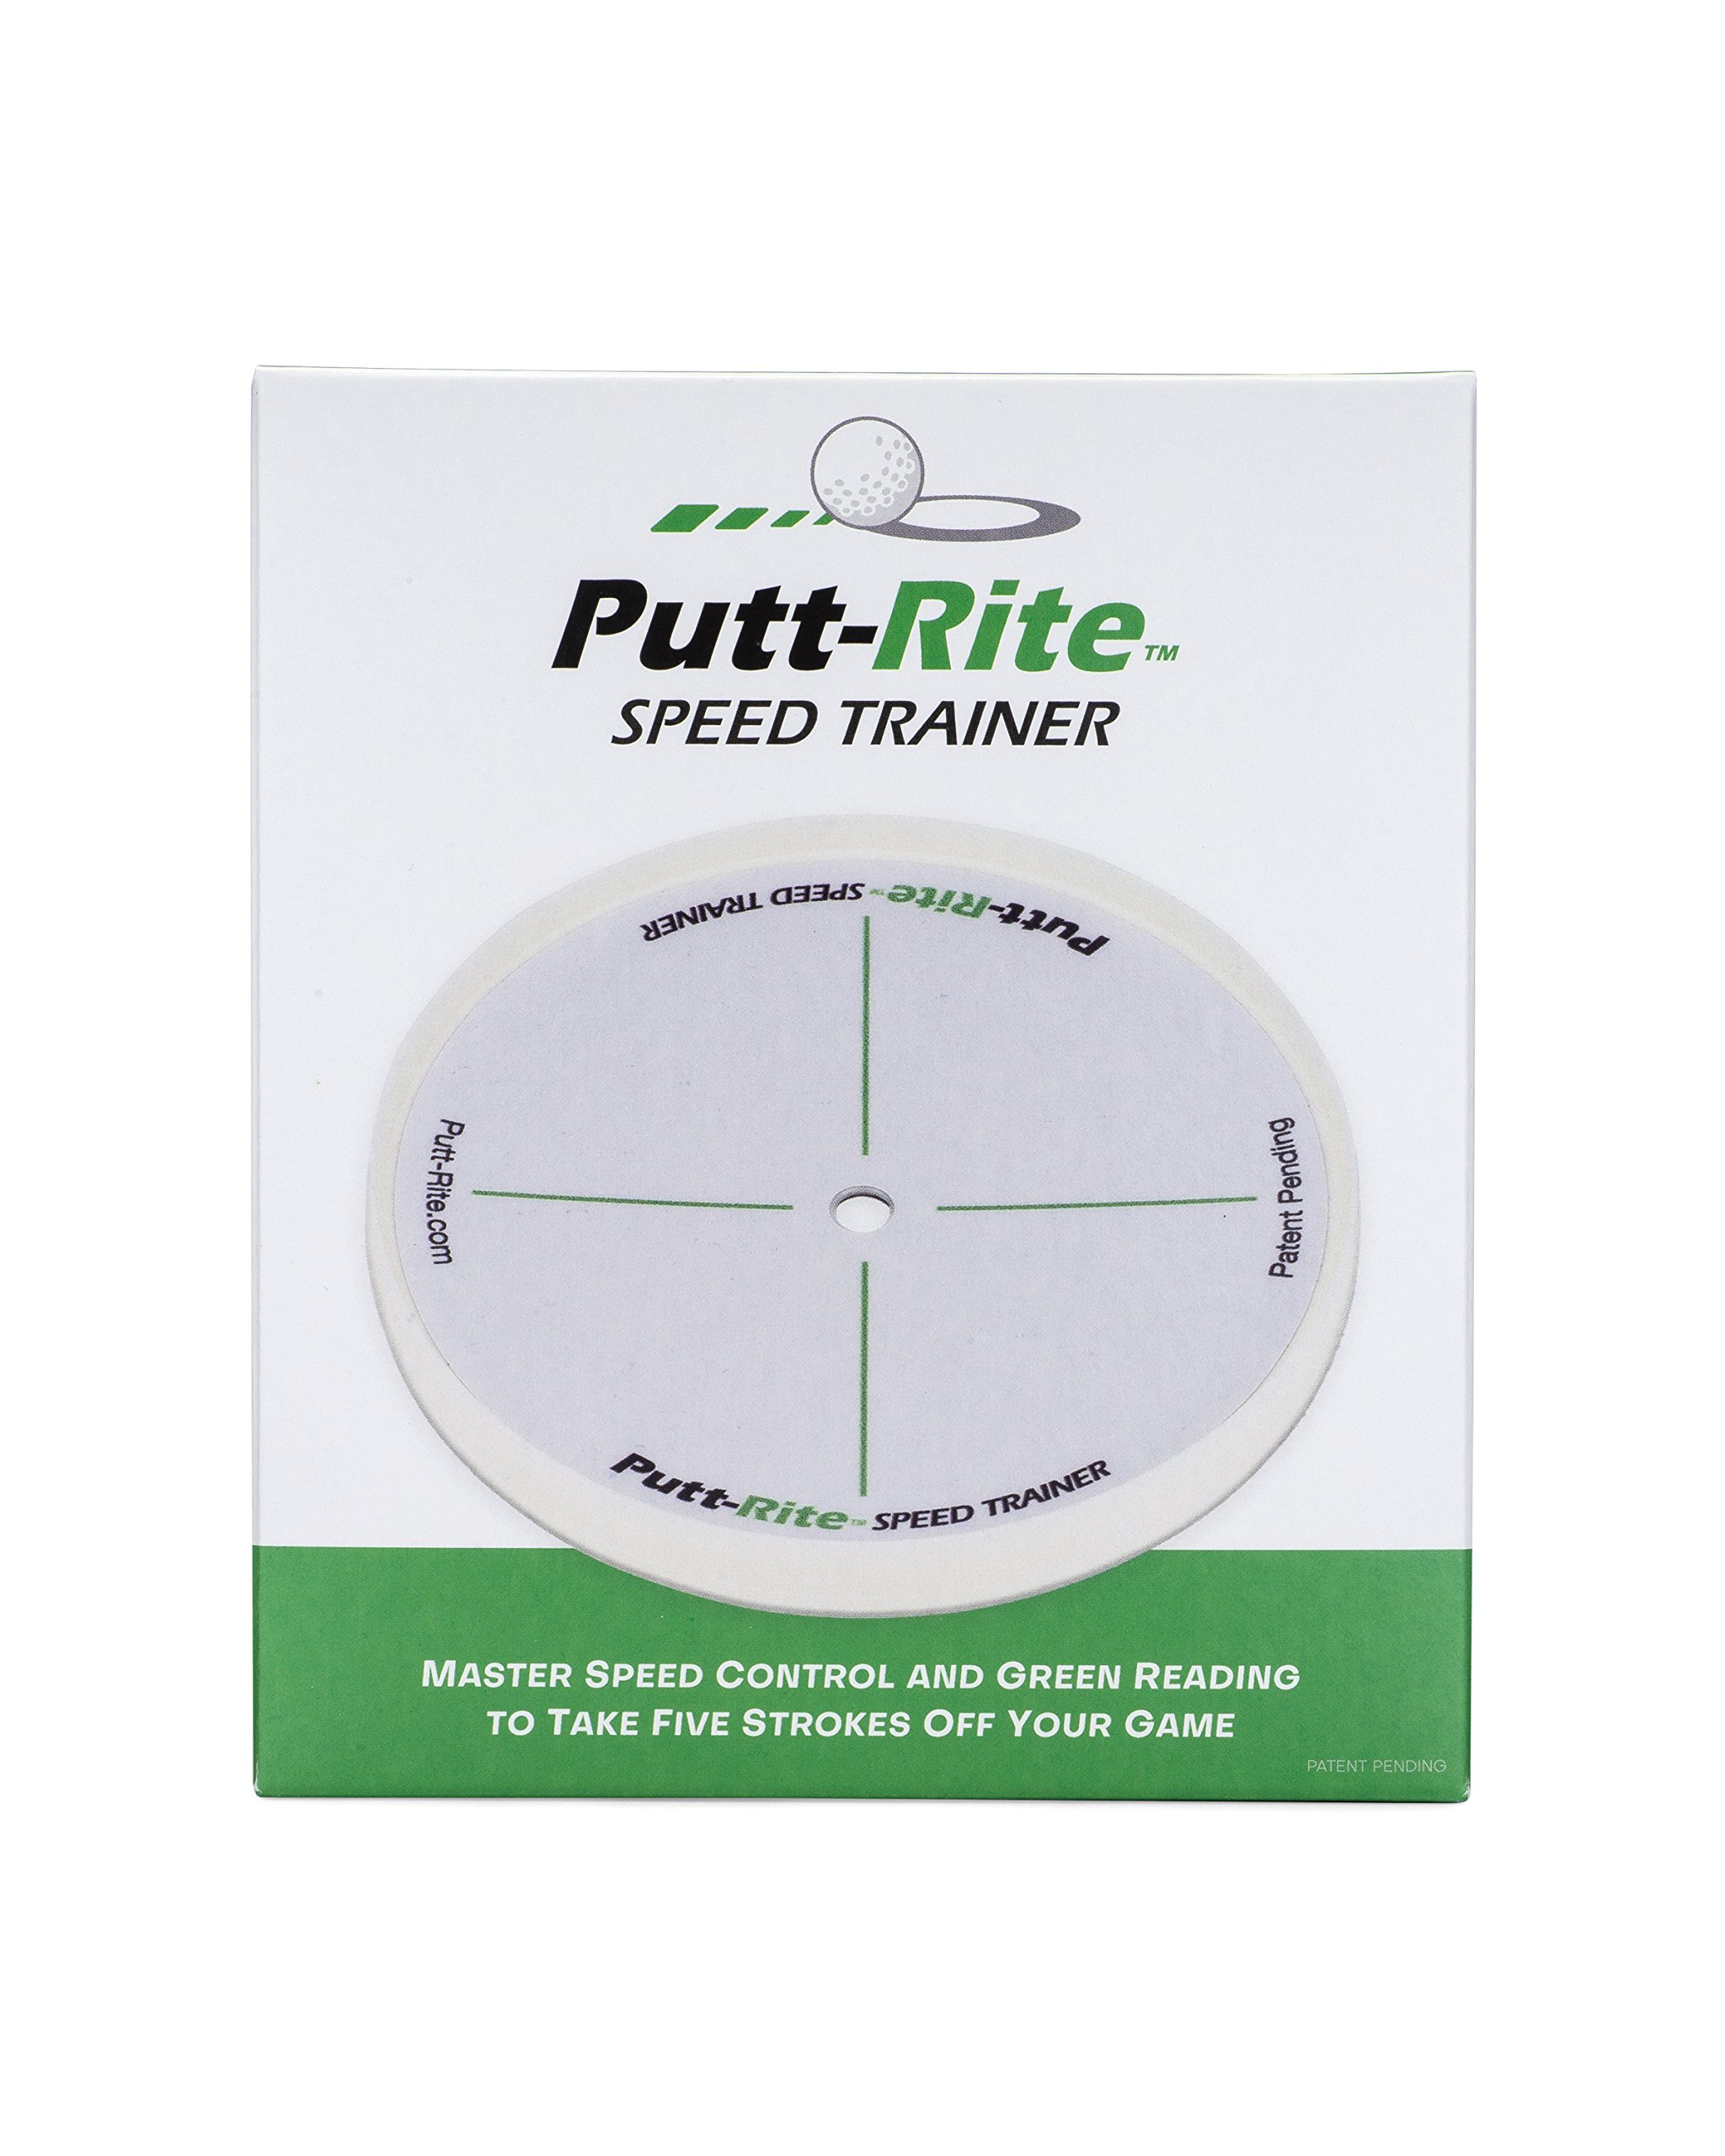 Putt-Rite Speed Trainer - Putting Training Aid to Perfect Putting Speed by Putt-Rite (Image #9)